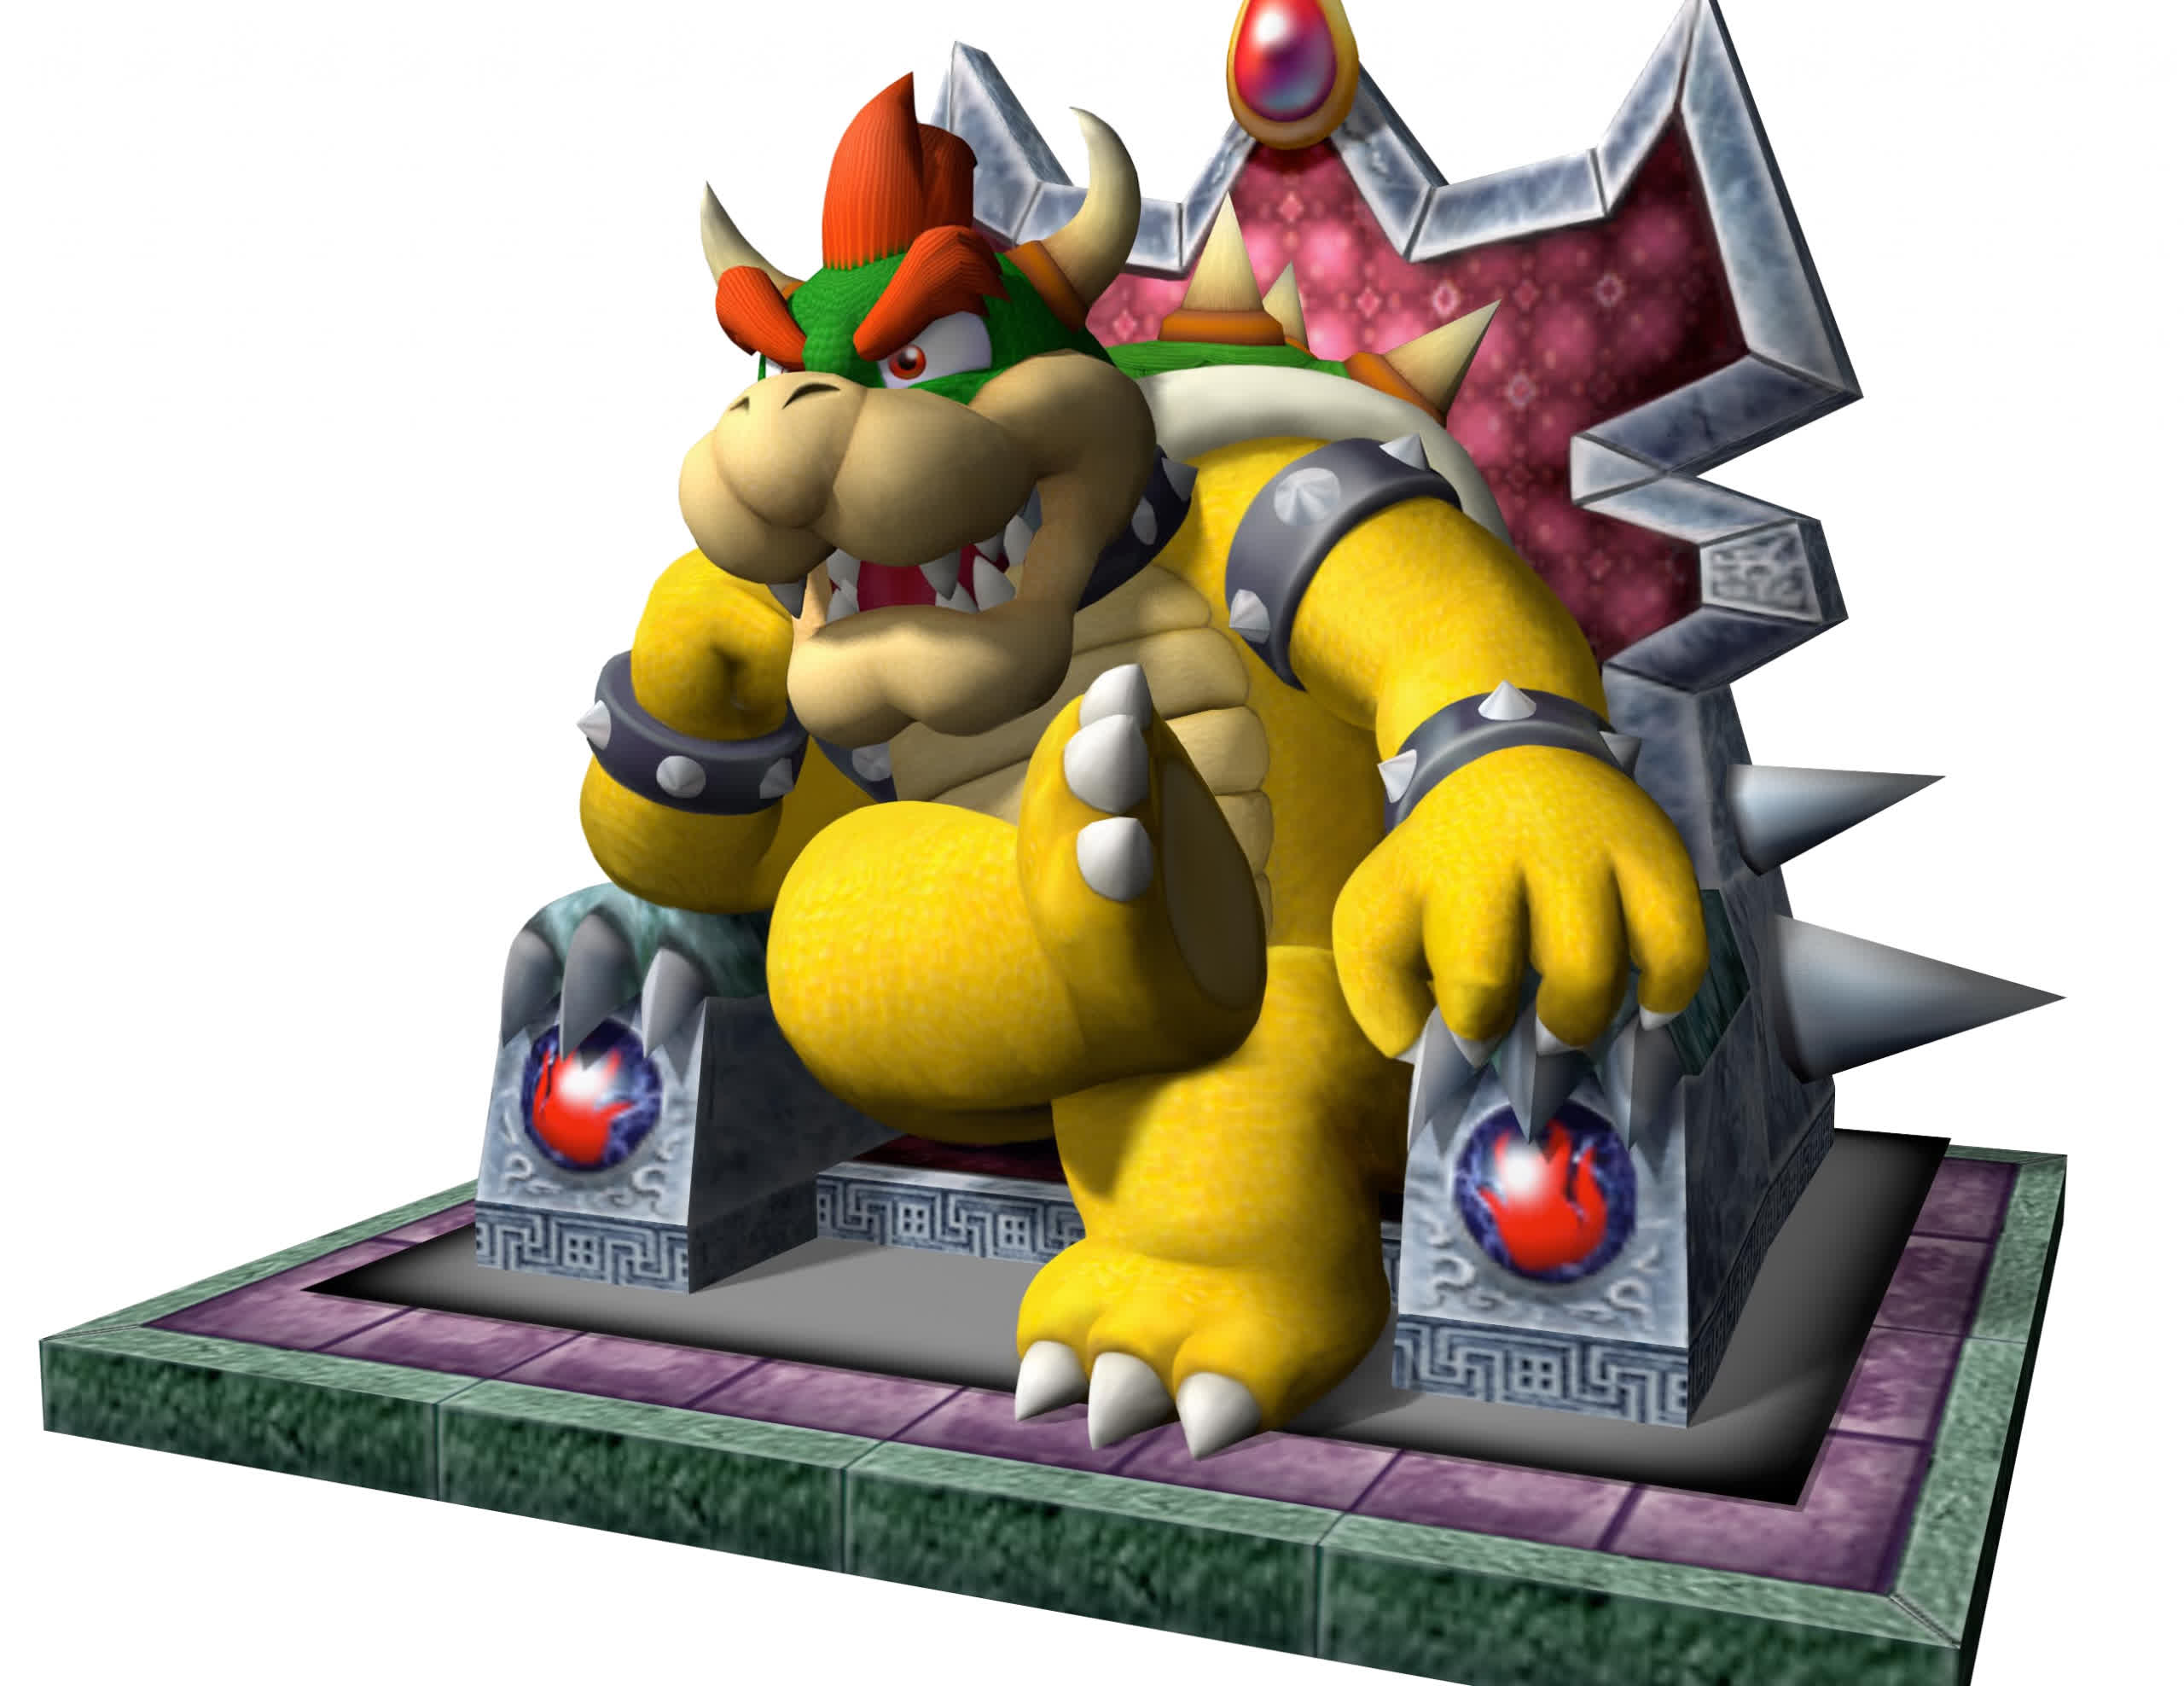 Nintendo of America and its president, Bowser, are suing a hacker called Bowser